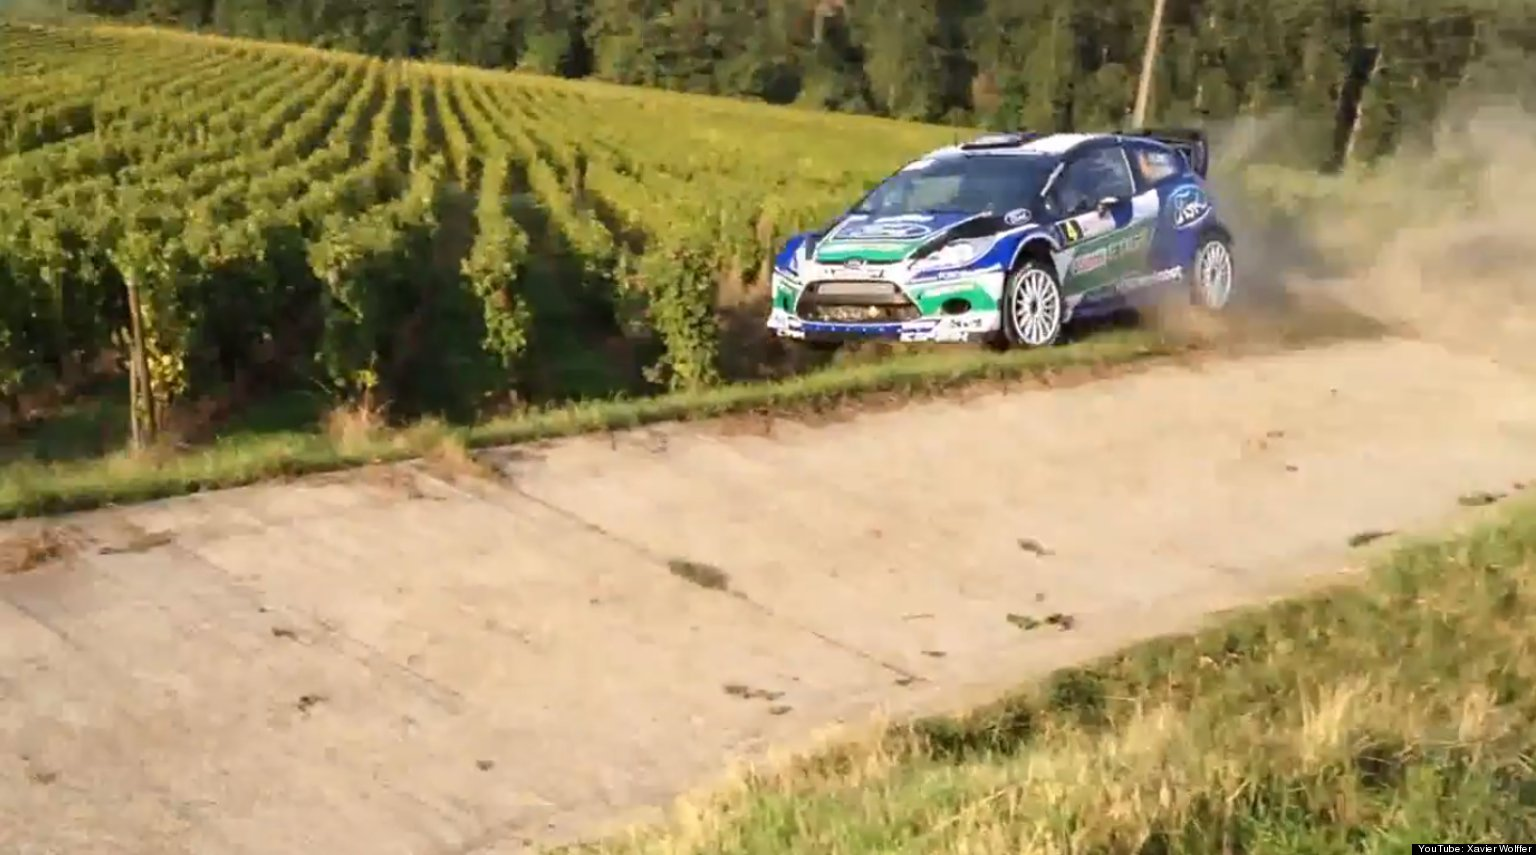 Rally Car Racing Crashes Race Car Crashes Into French